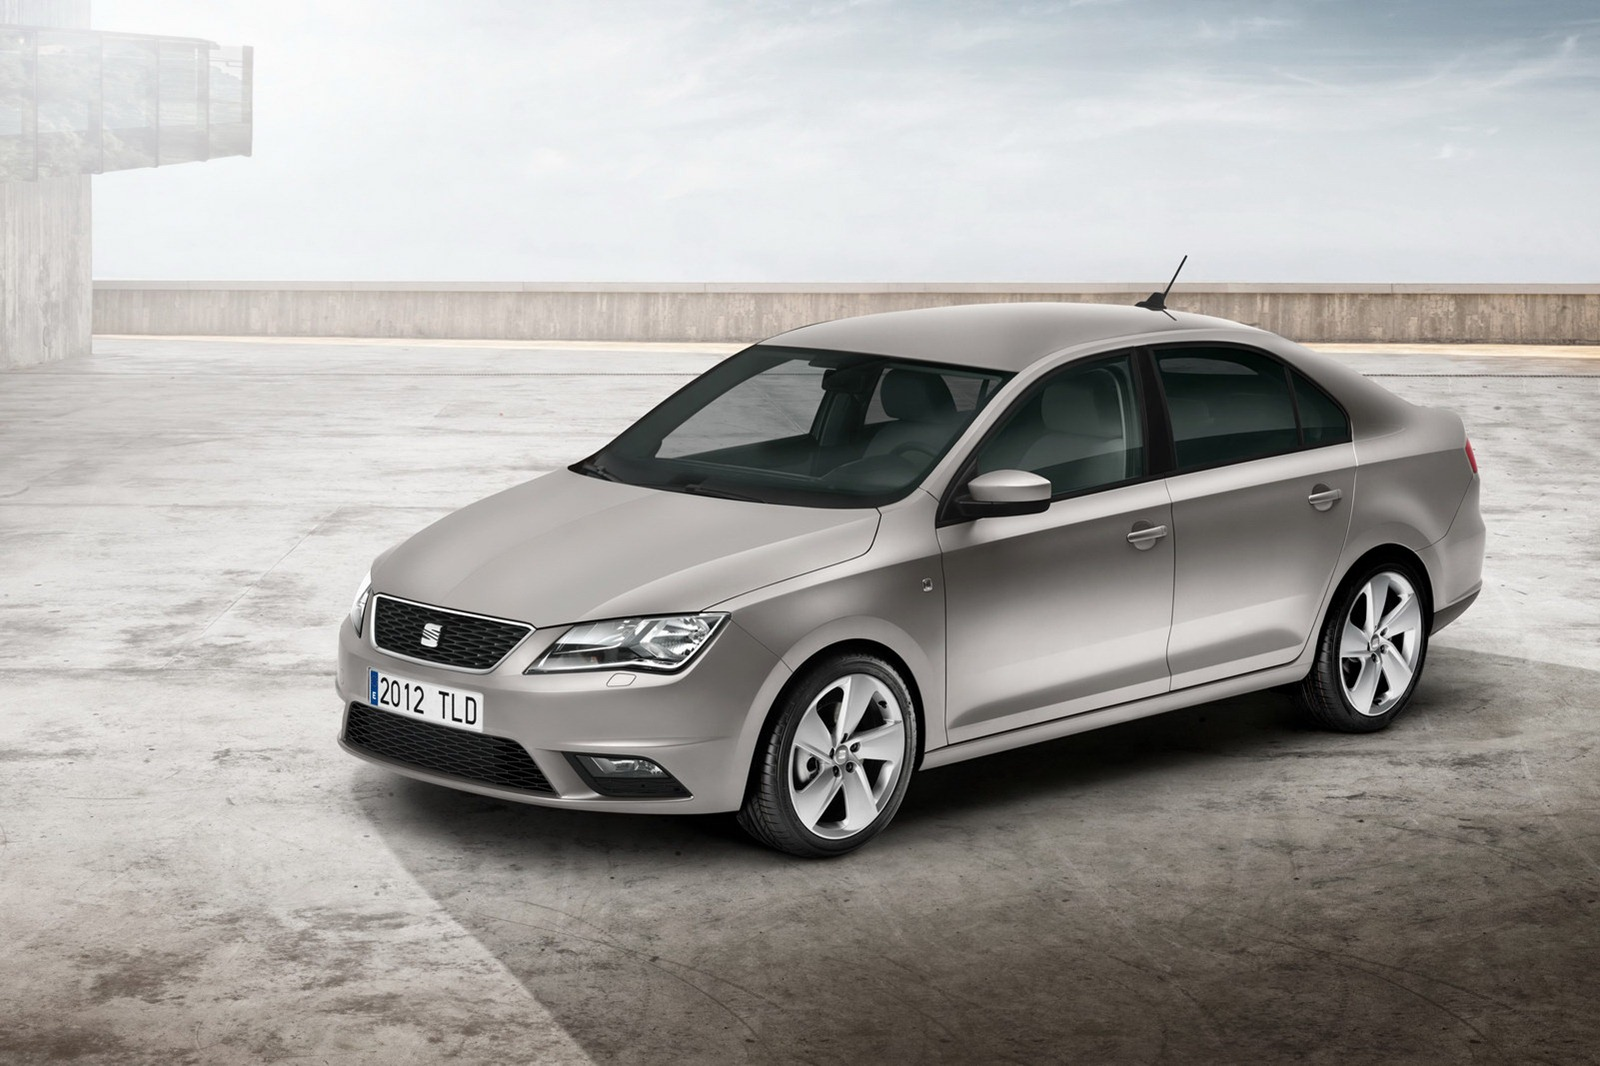 2013-Seat-Toledo-Sedan-Official-4.jpg?imgmax=1800